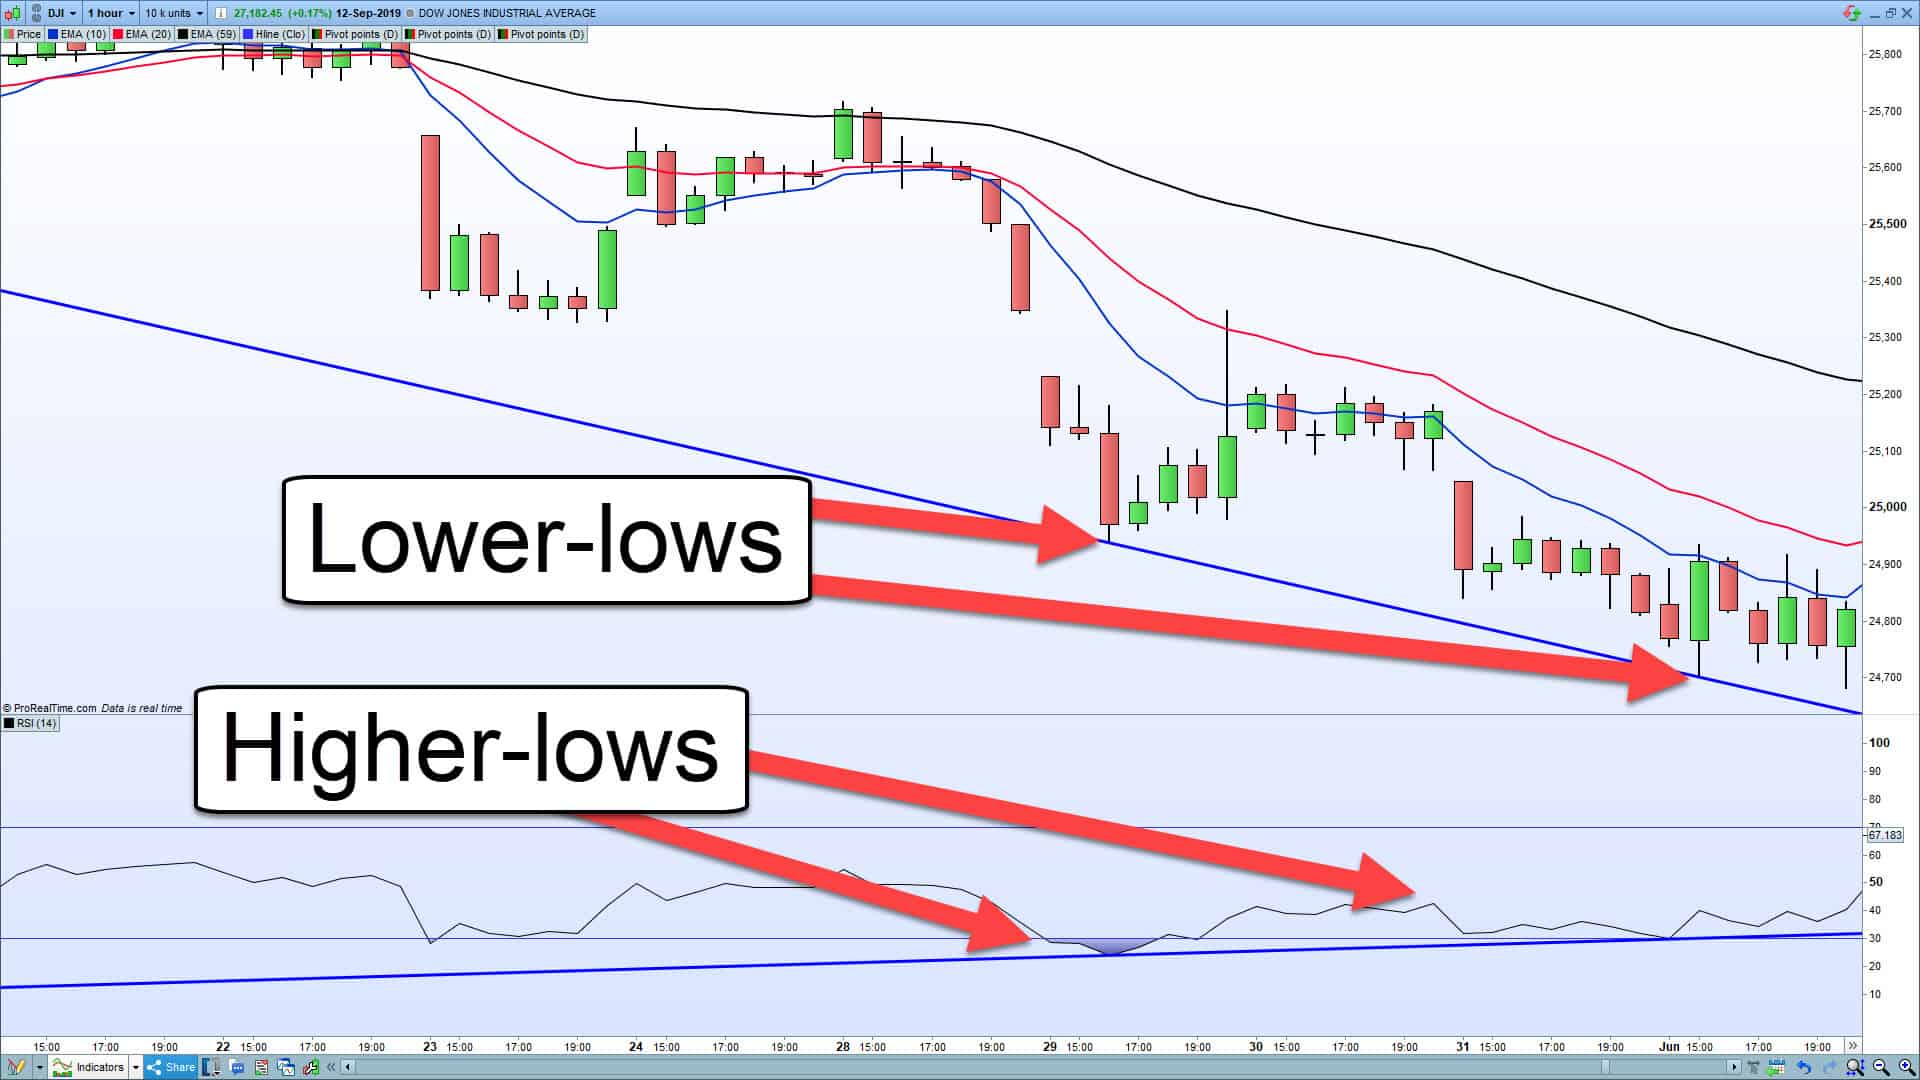 A chart showing a market making-lower lows whilst the RSI makes higher-lows.